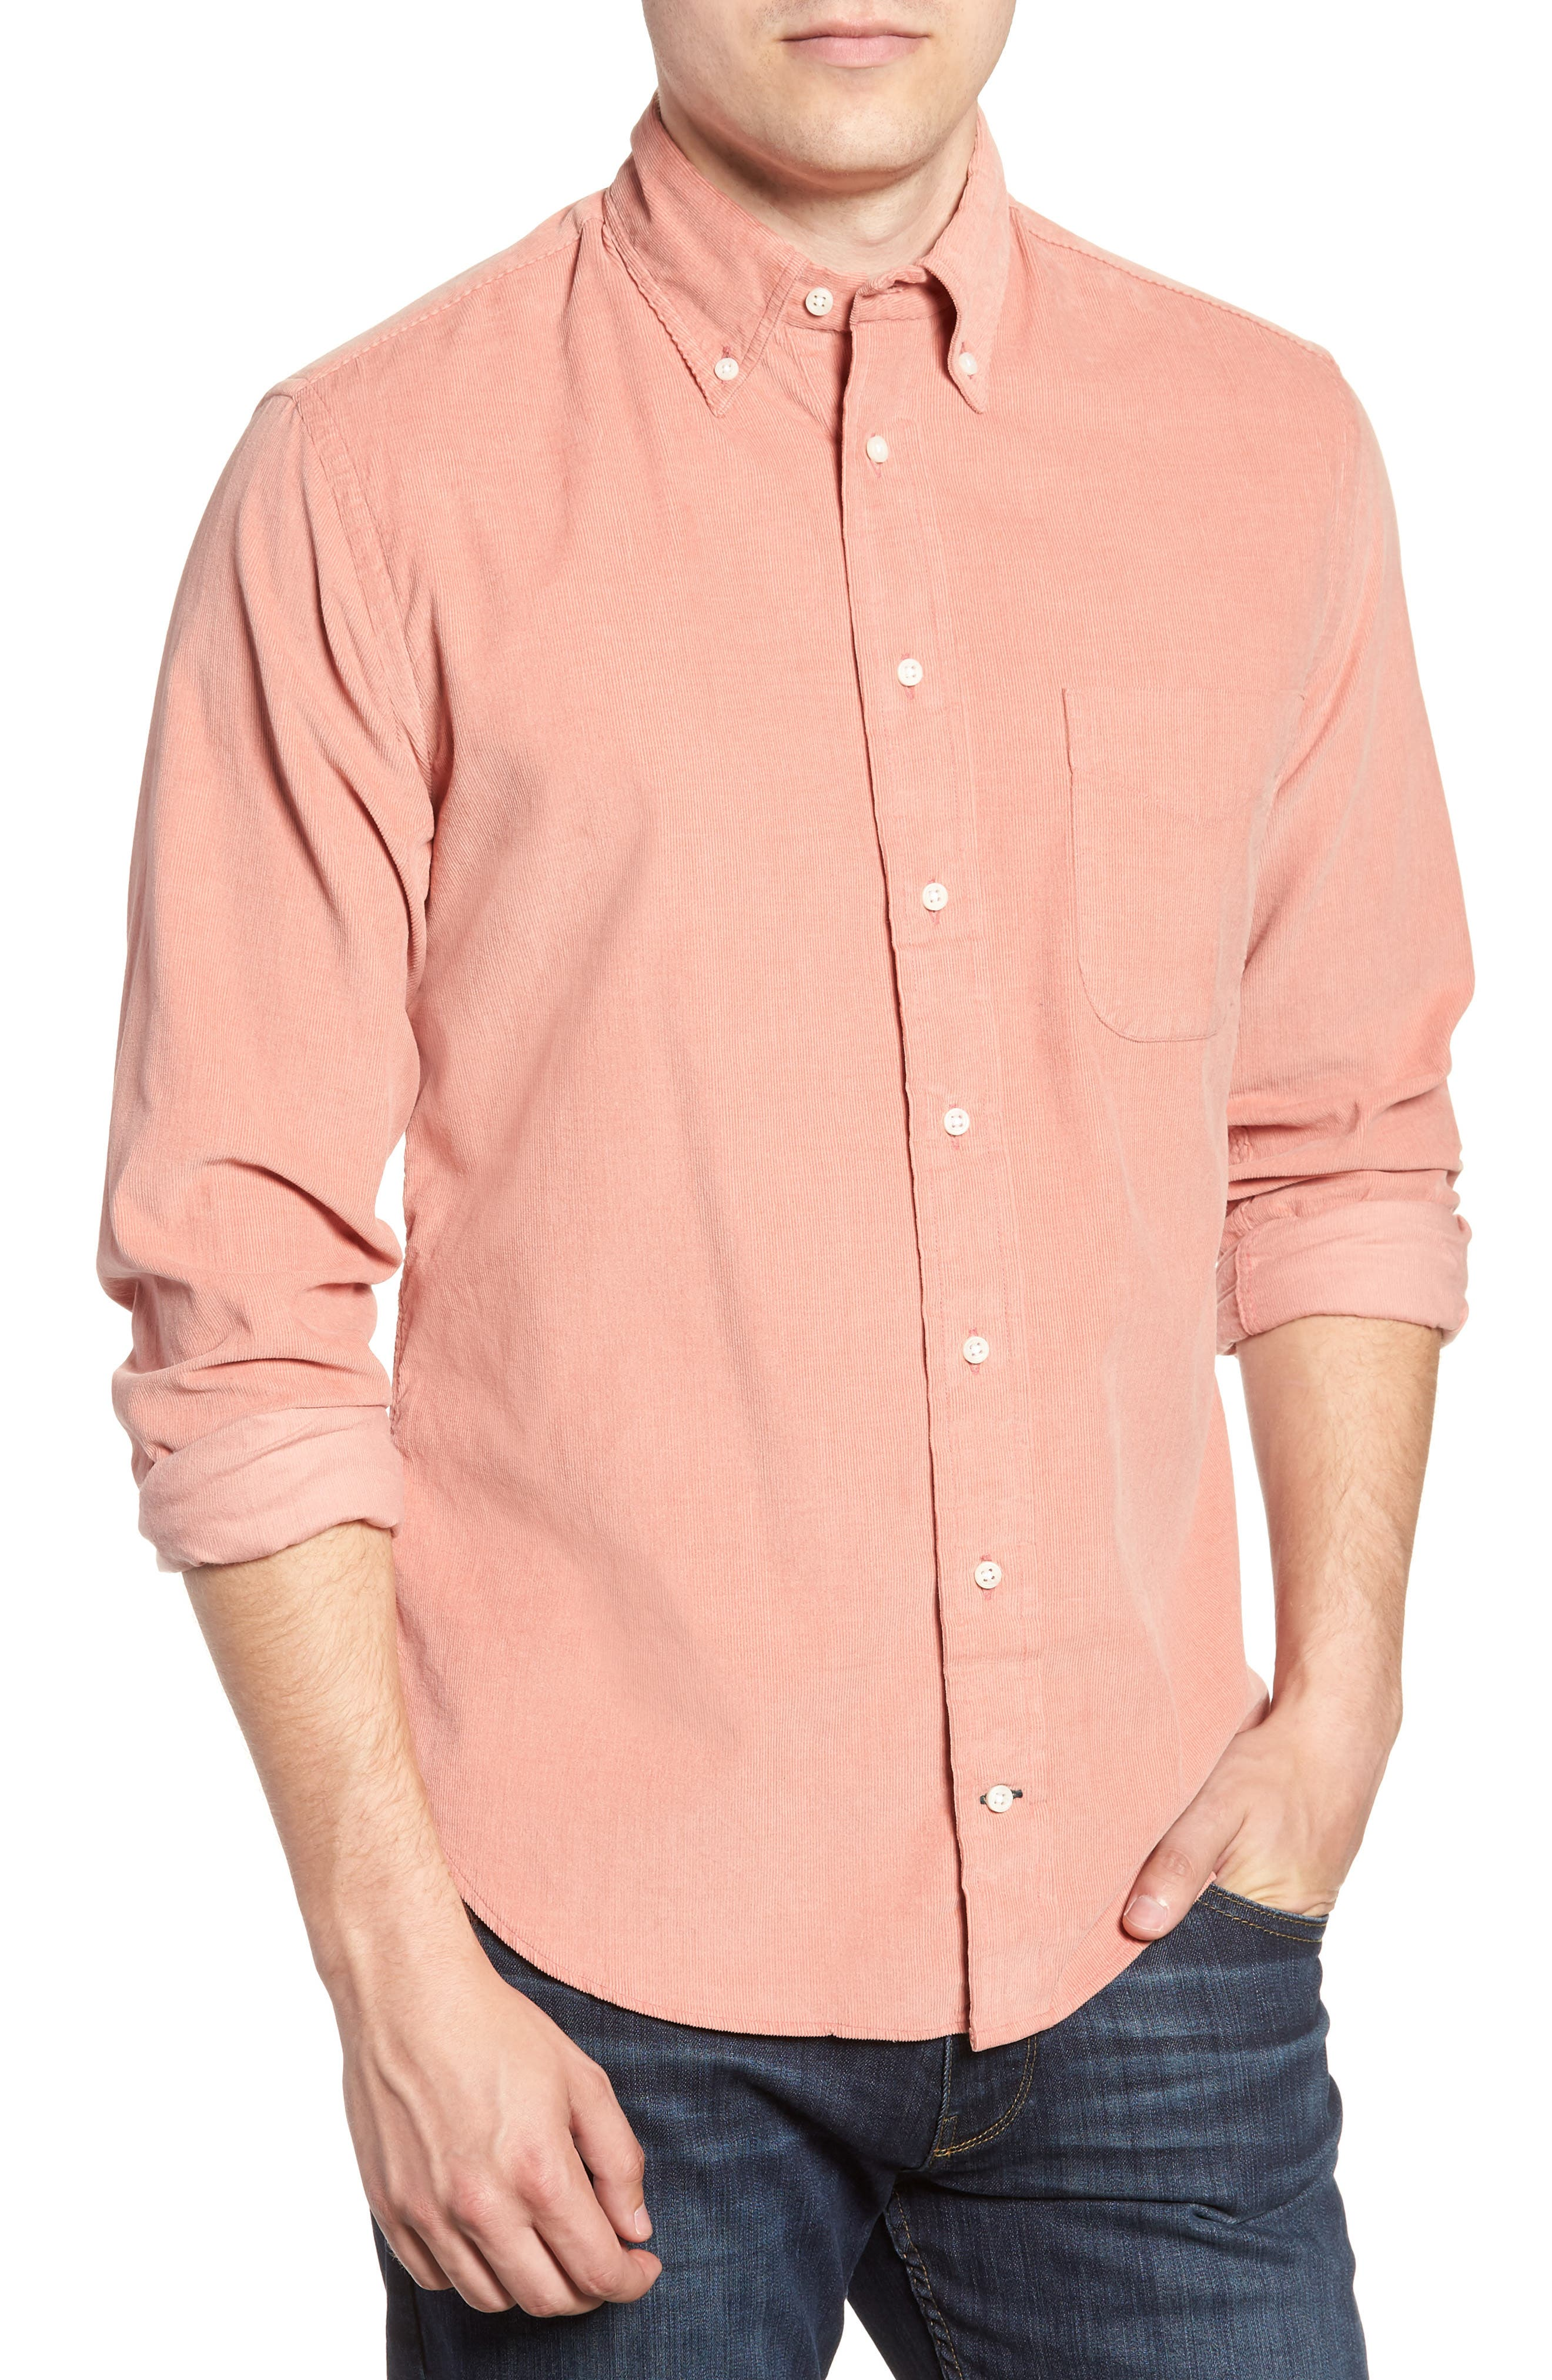 Regular Fit Corduroy Shirt,                             Main thumbnail 1, color,                             PINK